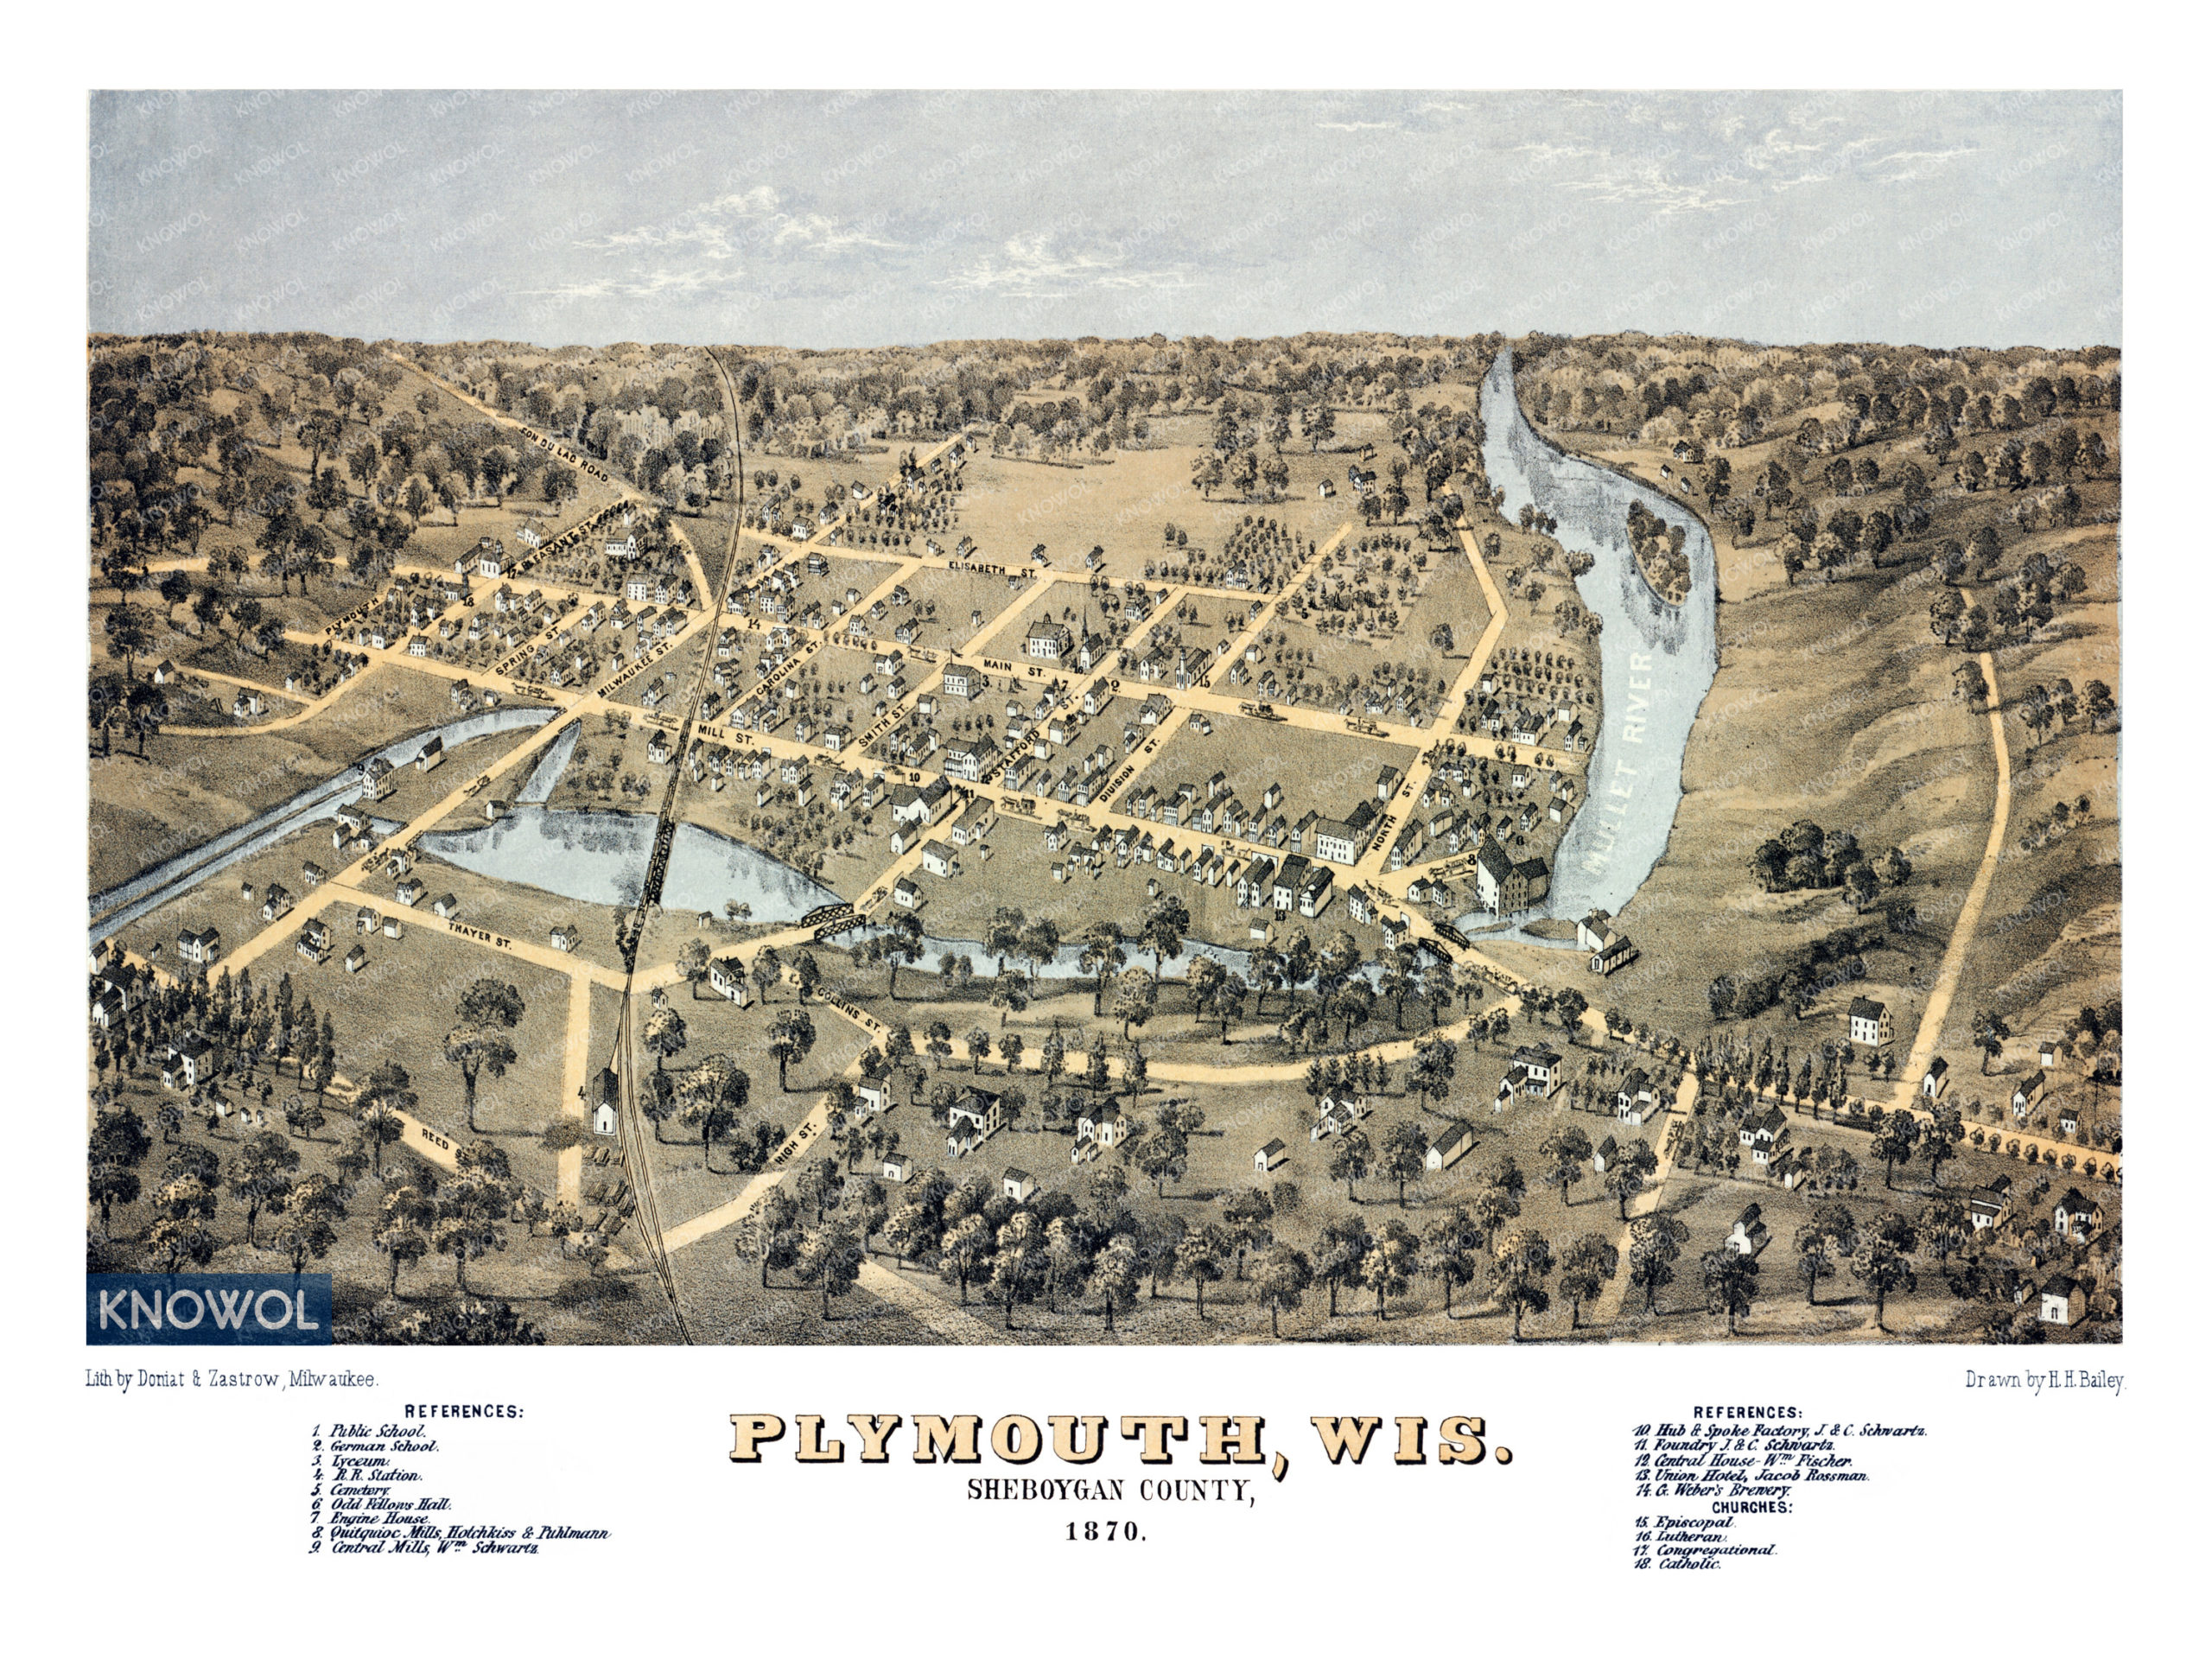 Bird's eye view map of Plymouth, Wisconsin from 1870. The map is in color and shows buildings, streets, and old landmarks of Plymouth Wisconsin from 1870.